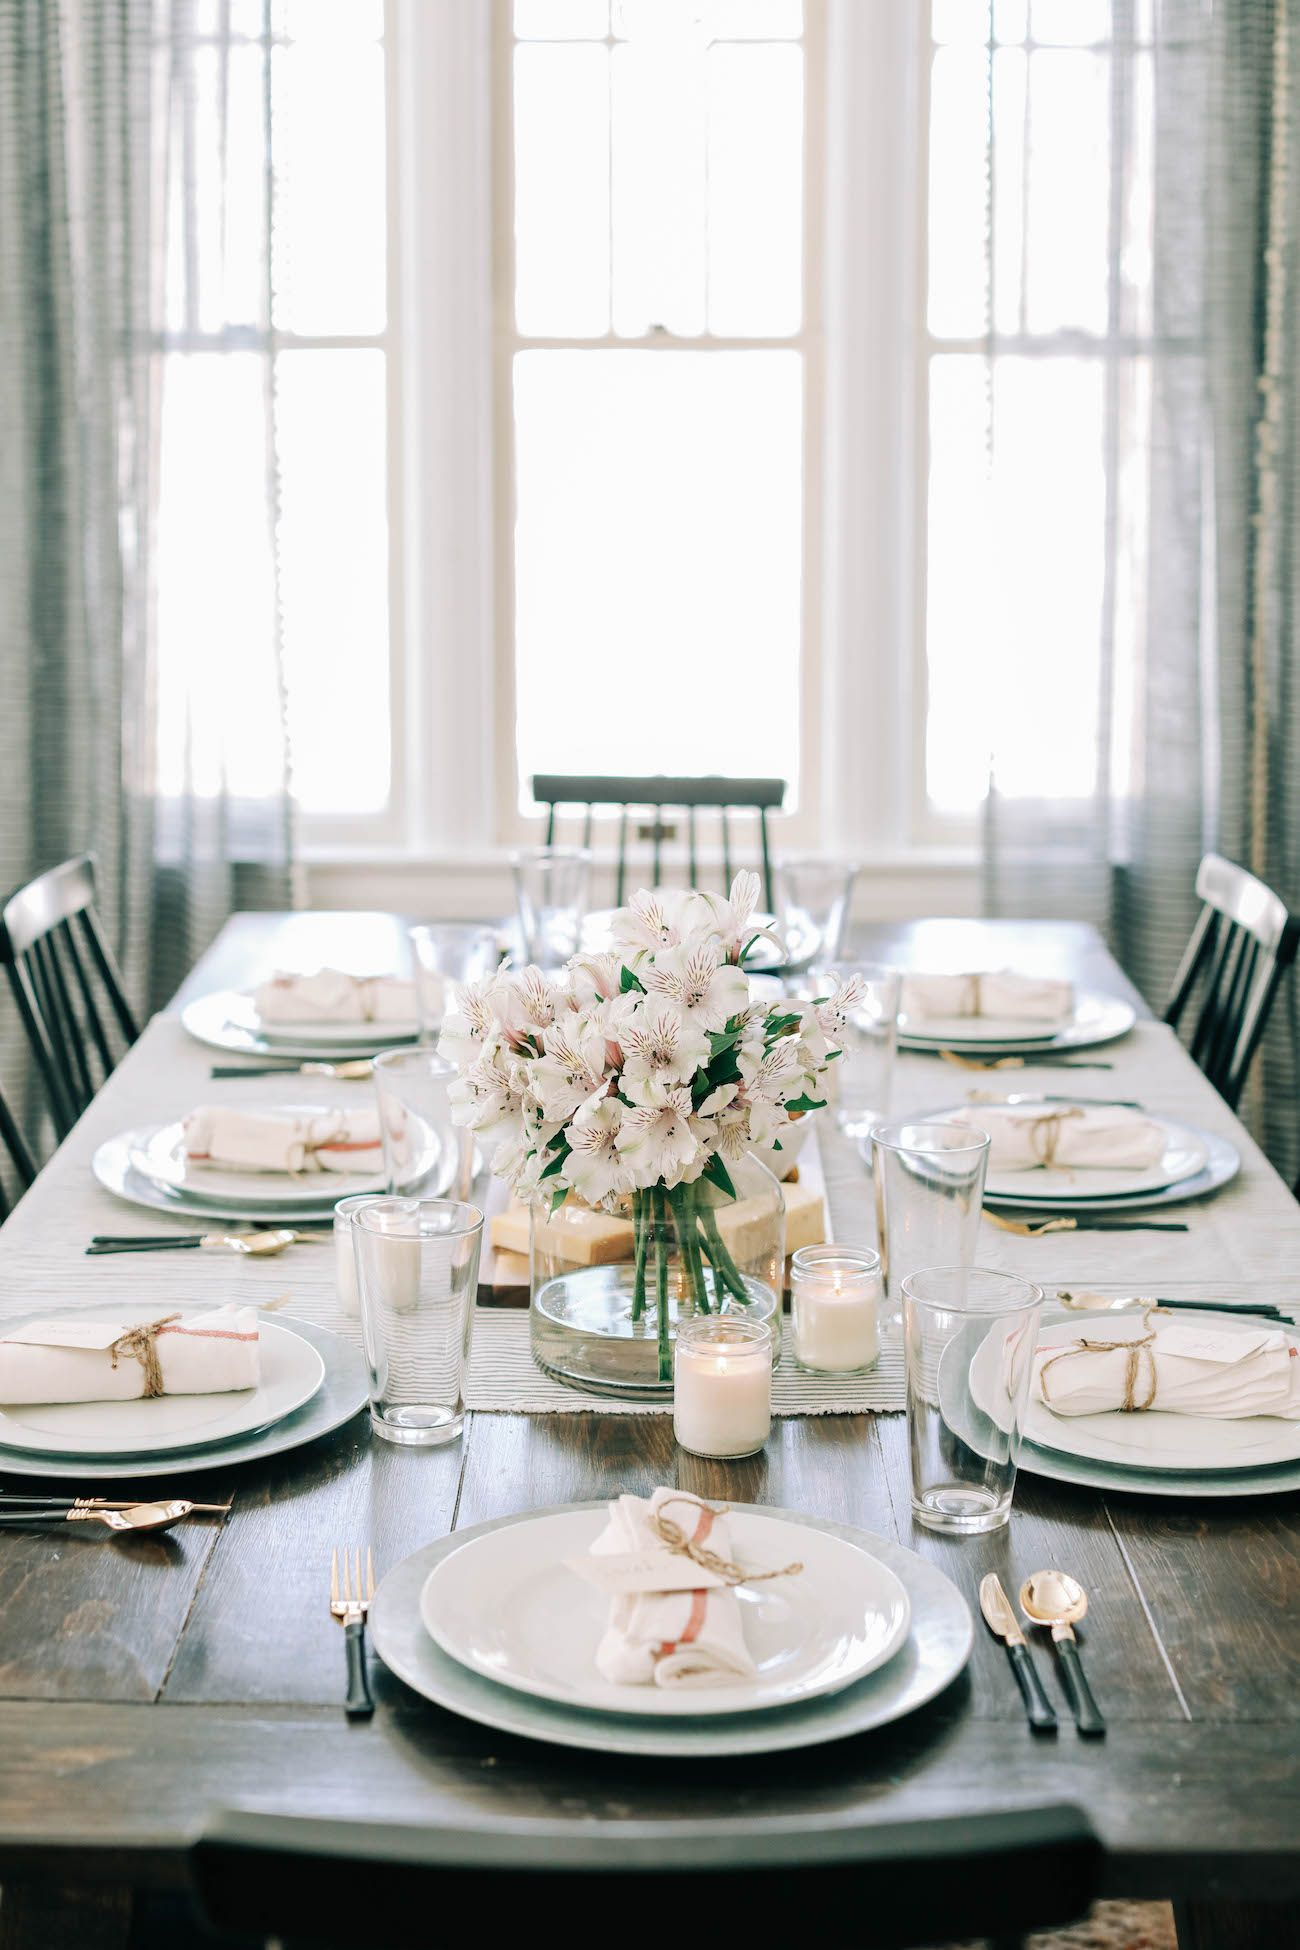 Setting The Table For A Casual Dinner Party Dinner Party